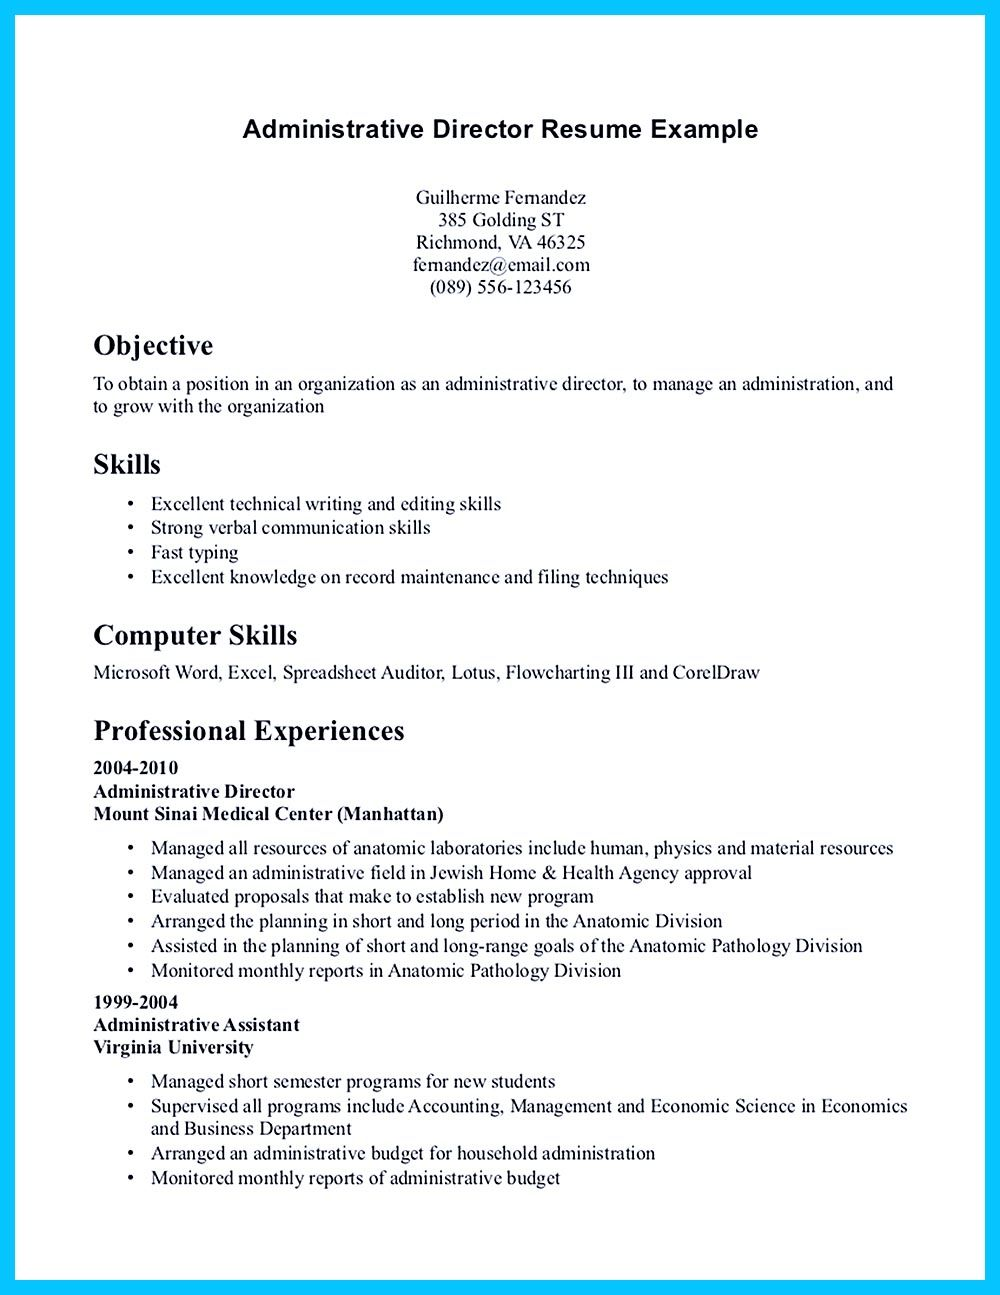 Administrative Assistant Resume Template. Medical Resume ...